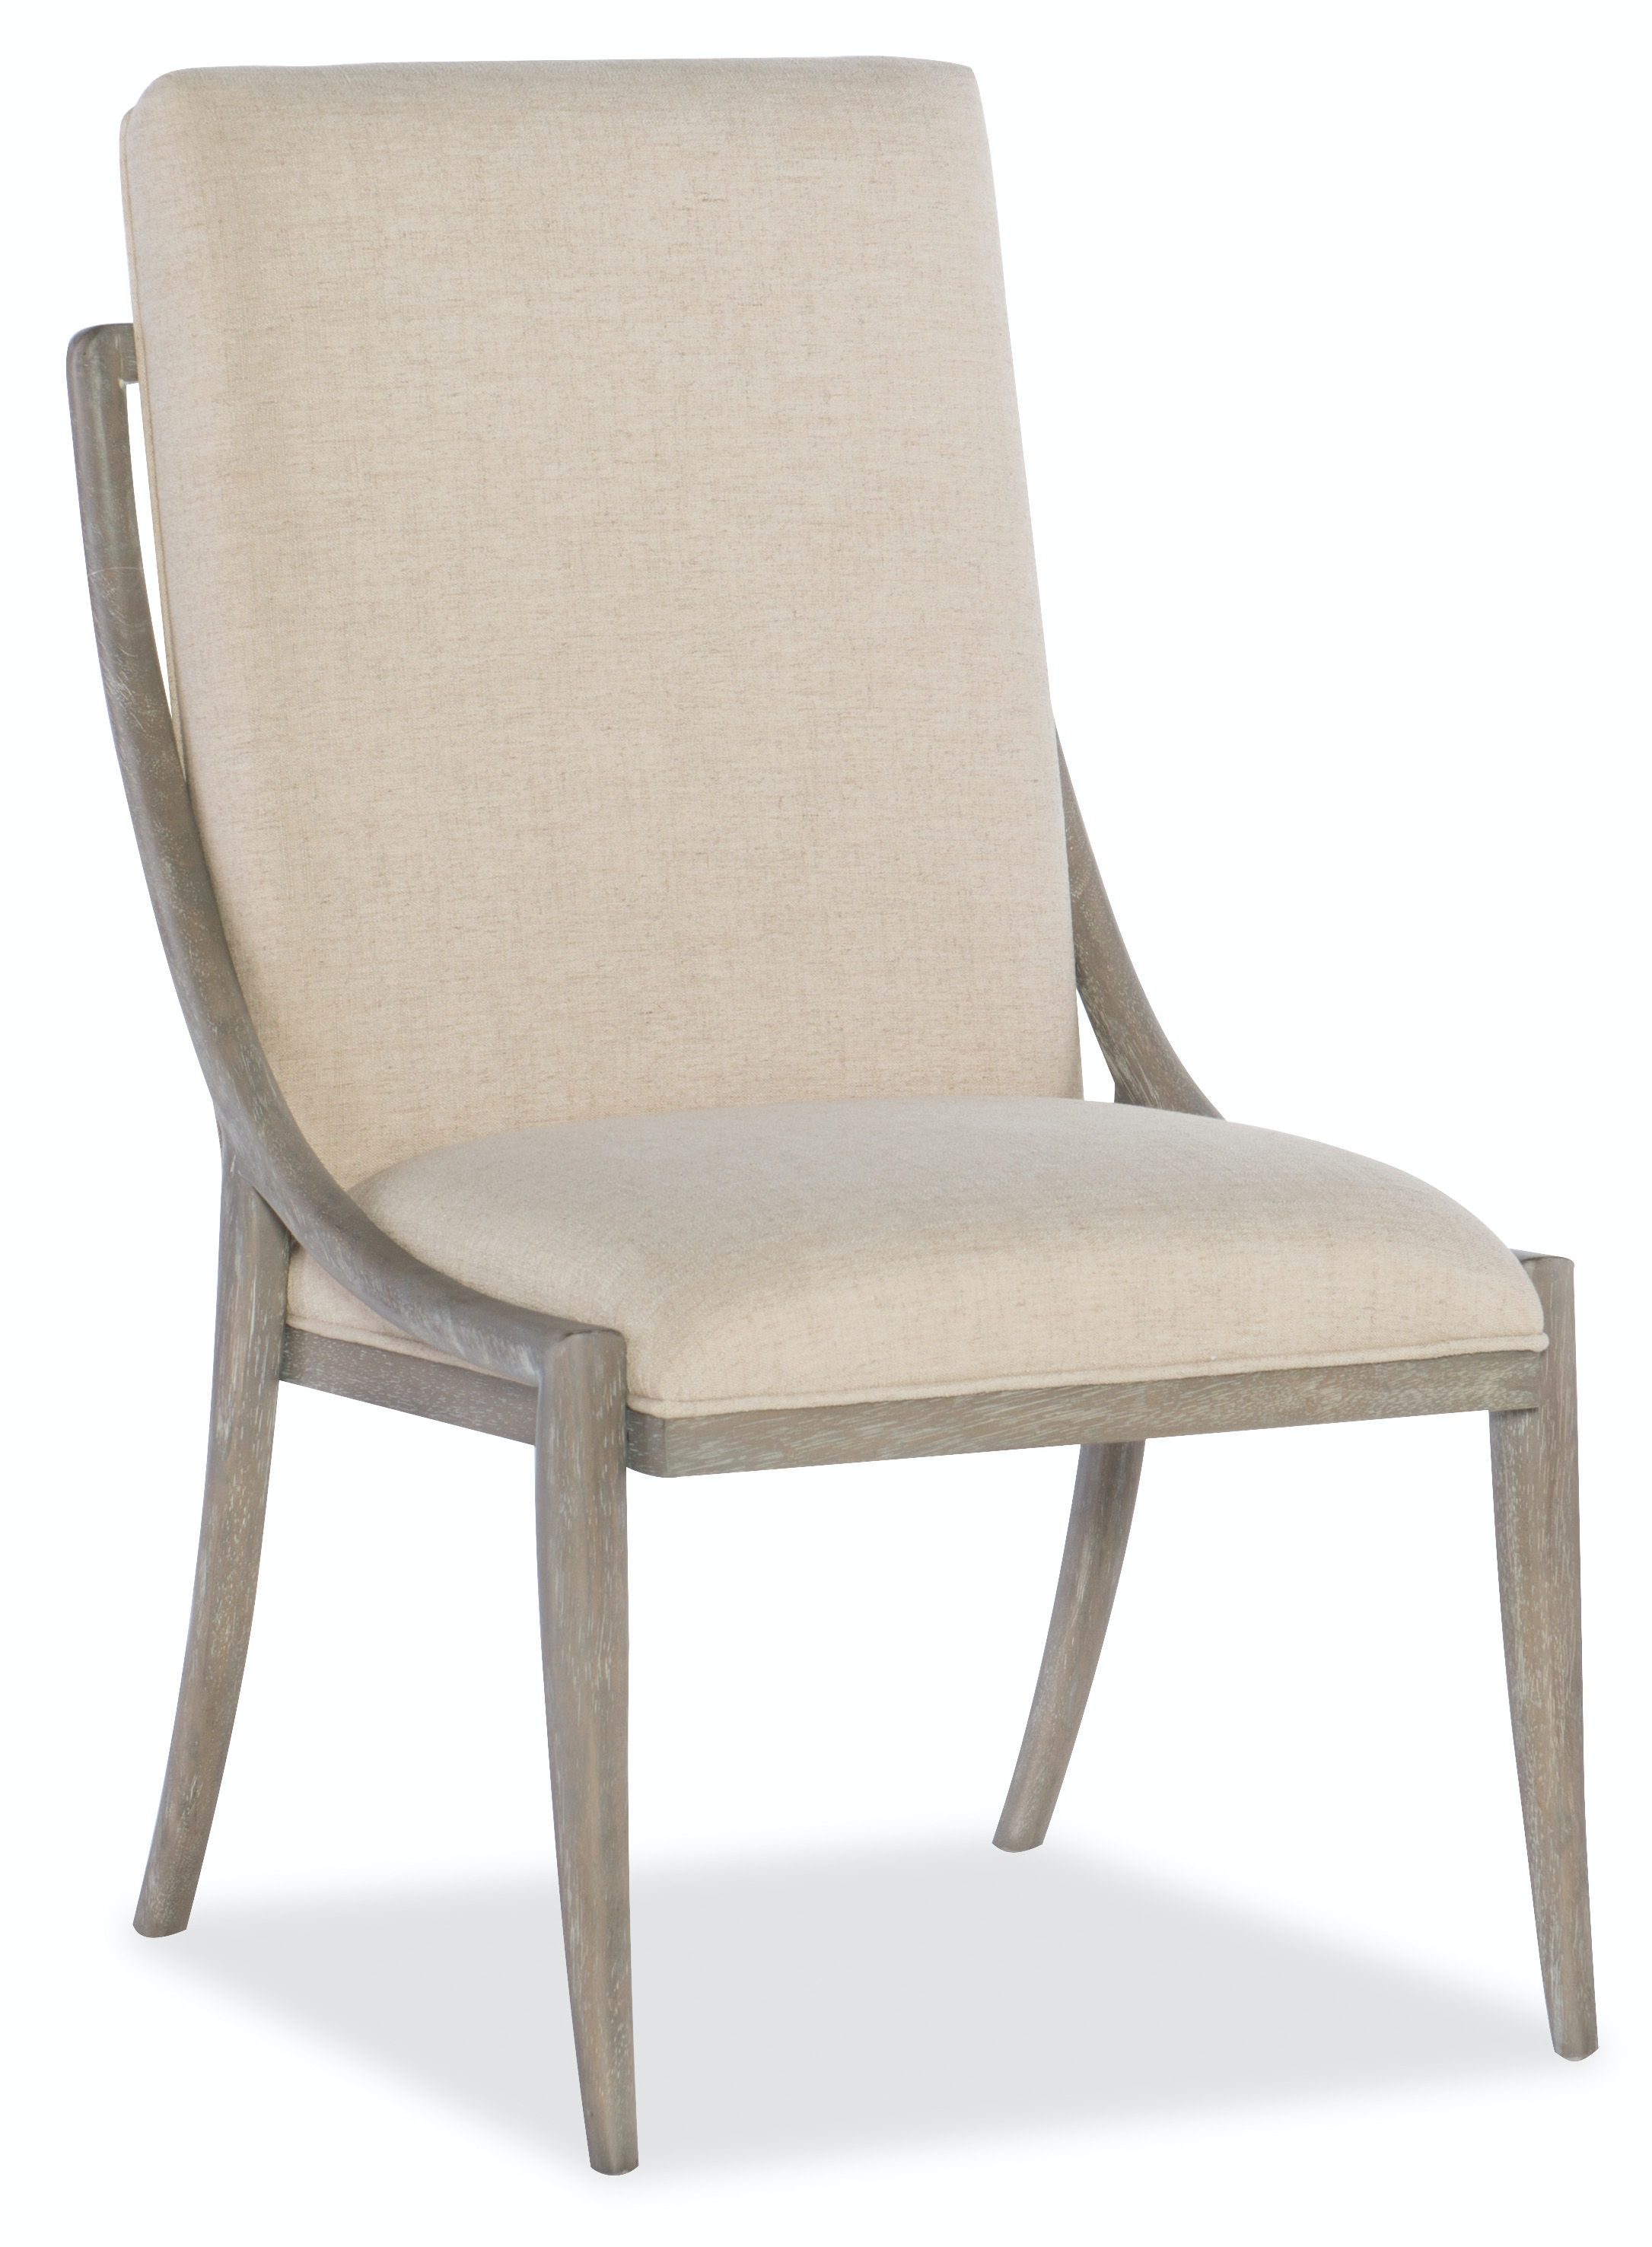 Hooker Furniture Affinity Slope Side Chair 6050 75510 GRY